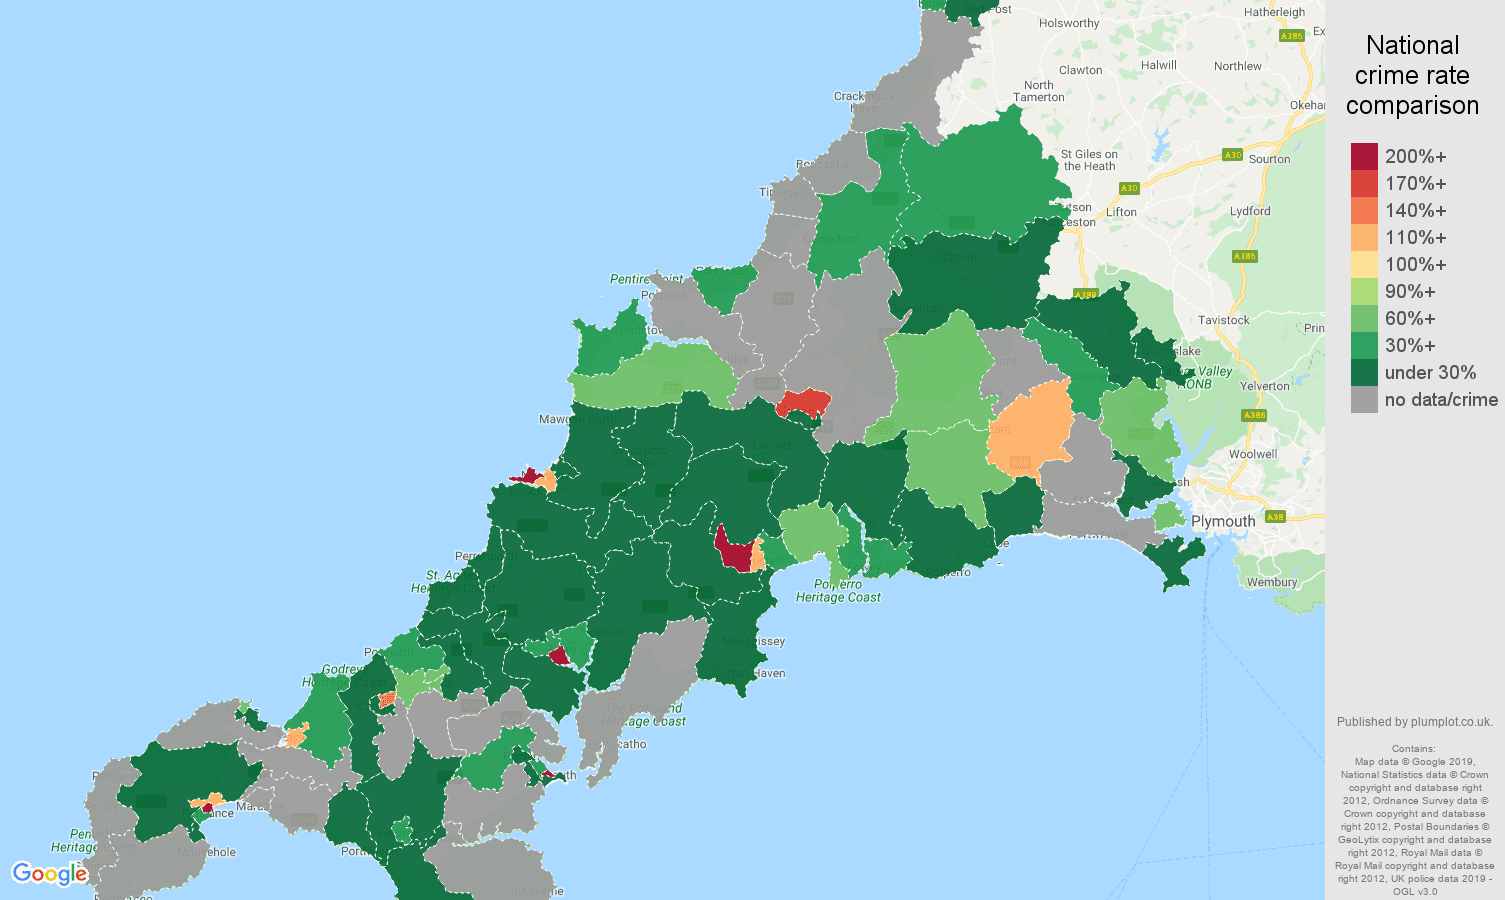 Cornwall shoplifting crime rate comparison map